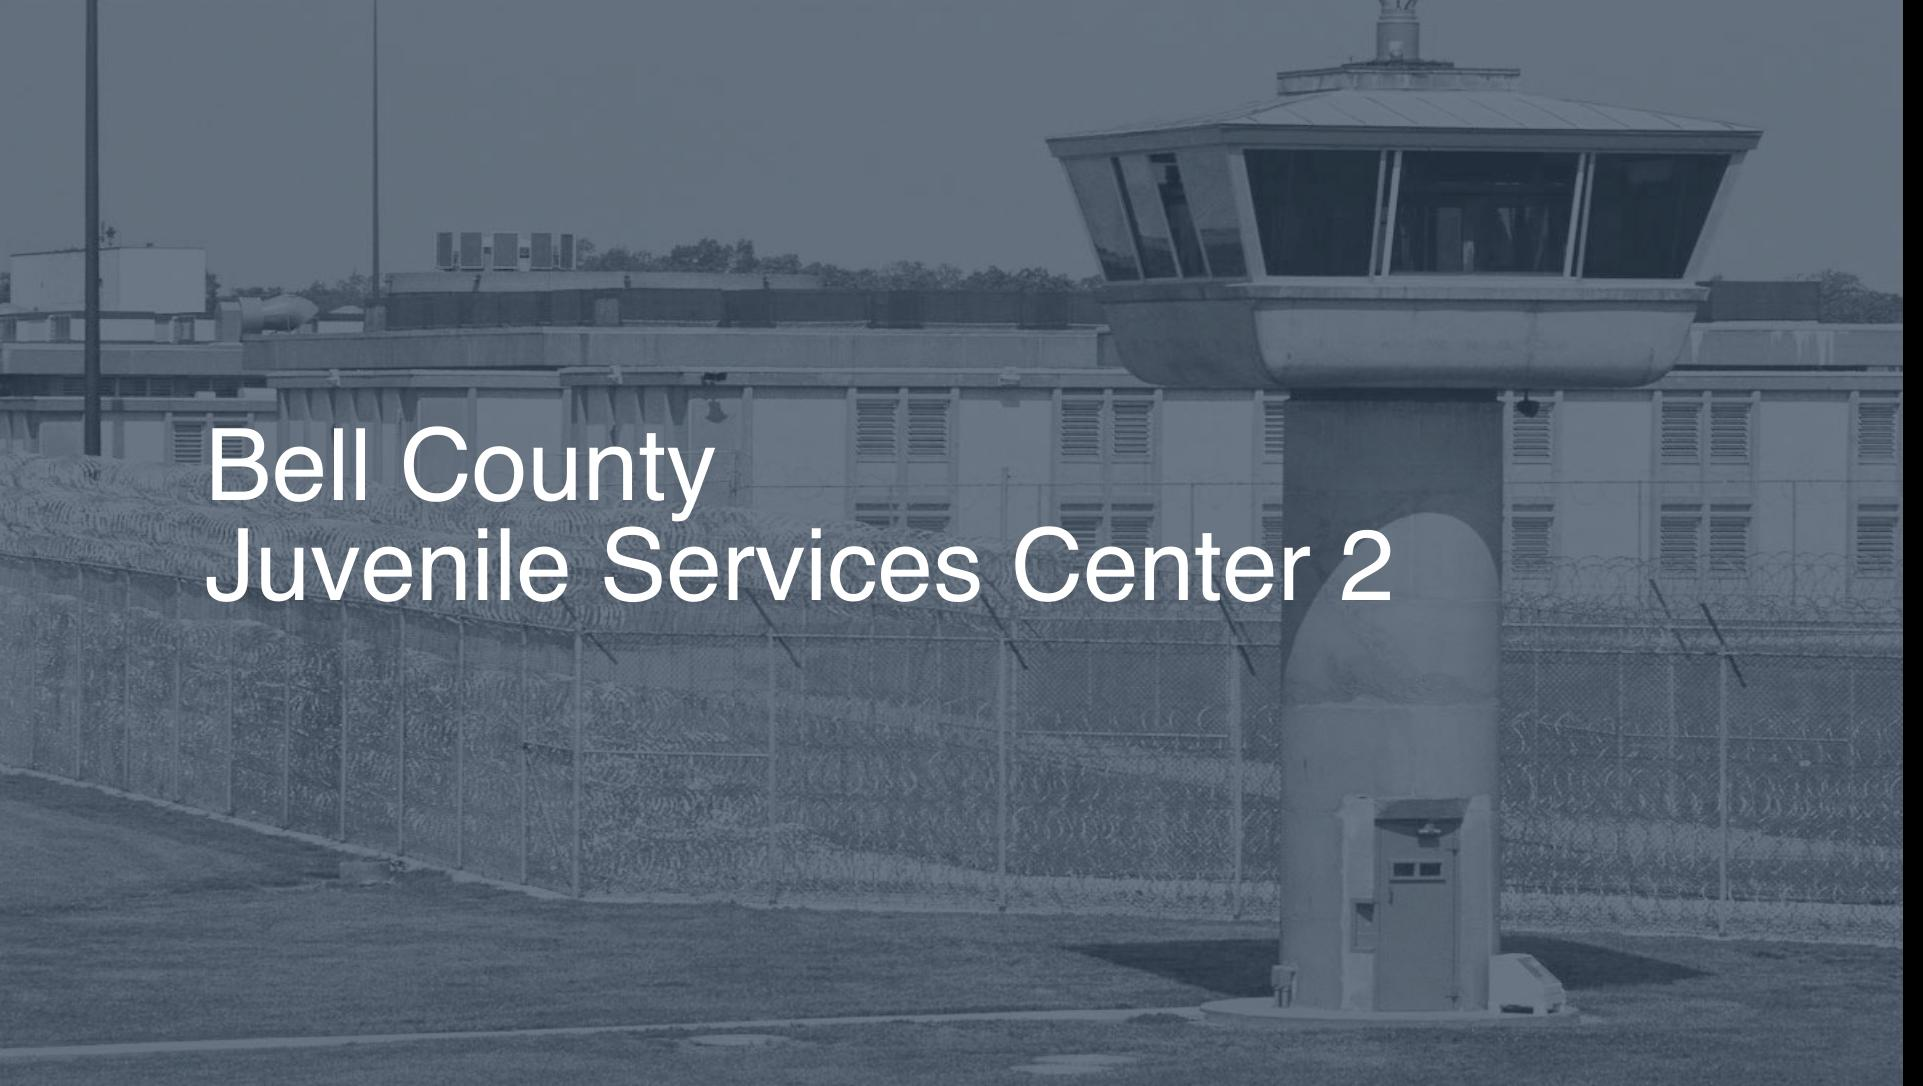 Bell County Juvenile Services Center Inmate Search, Lookup